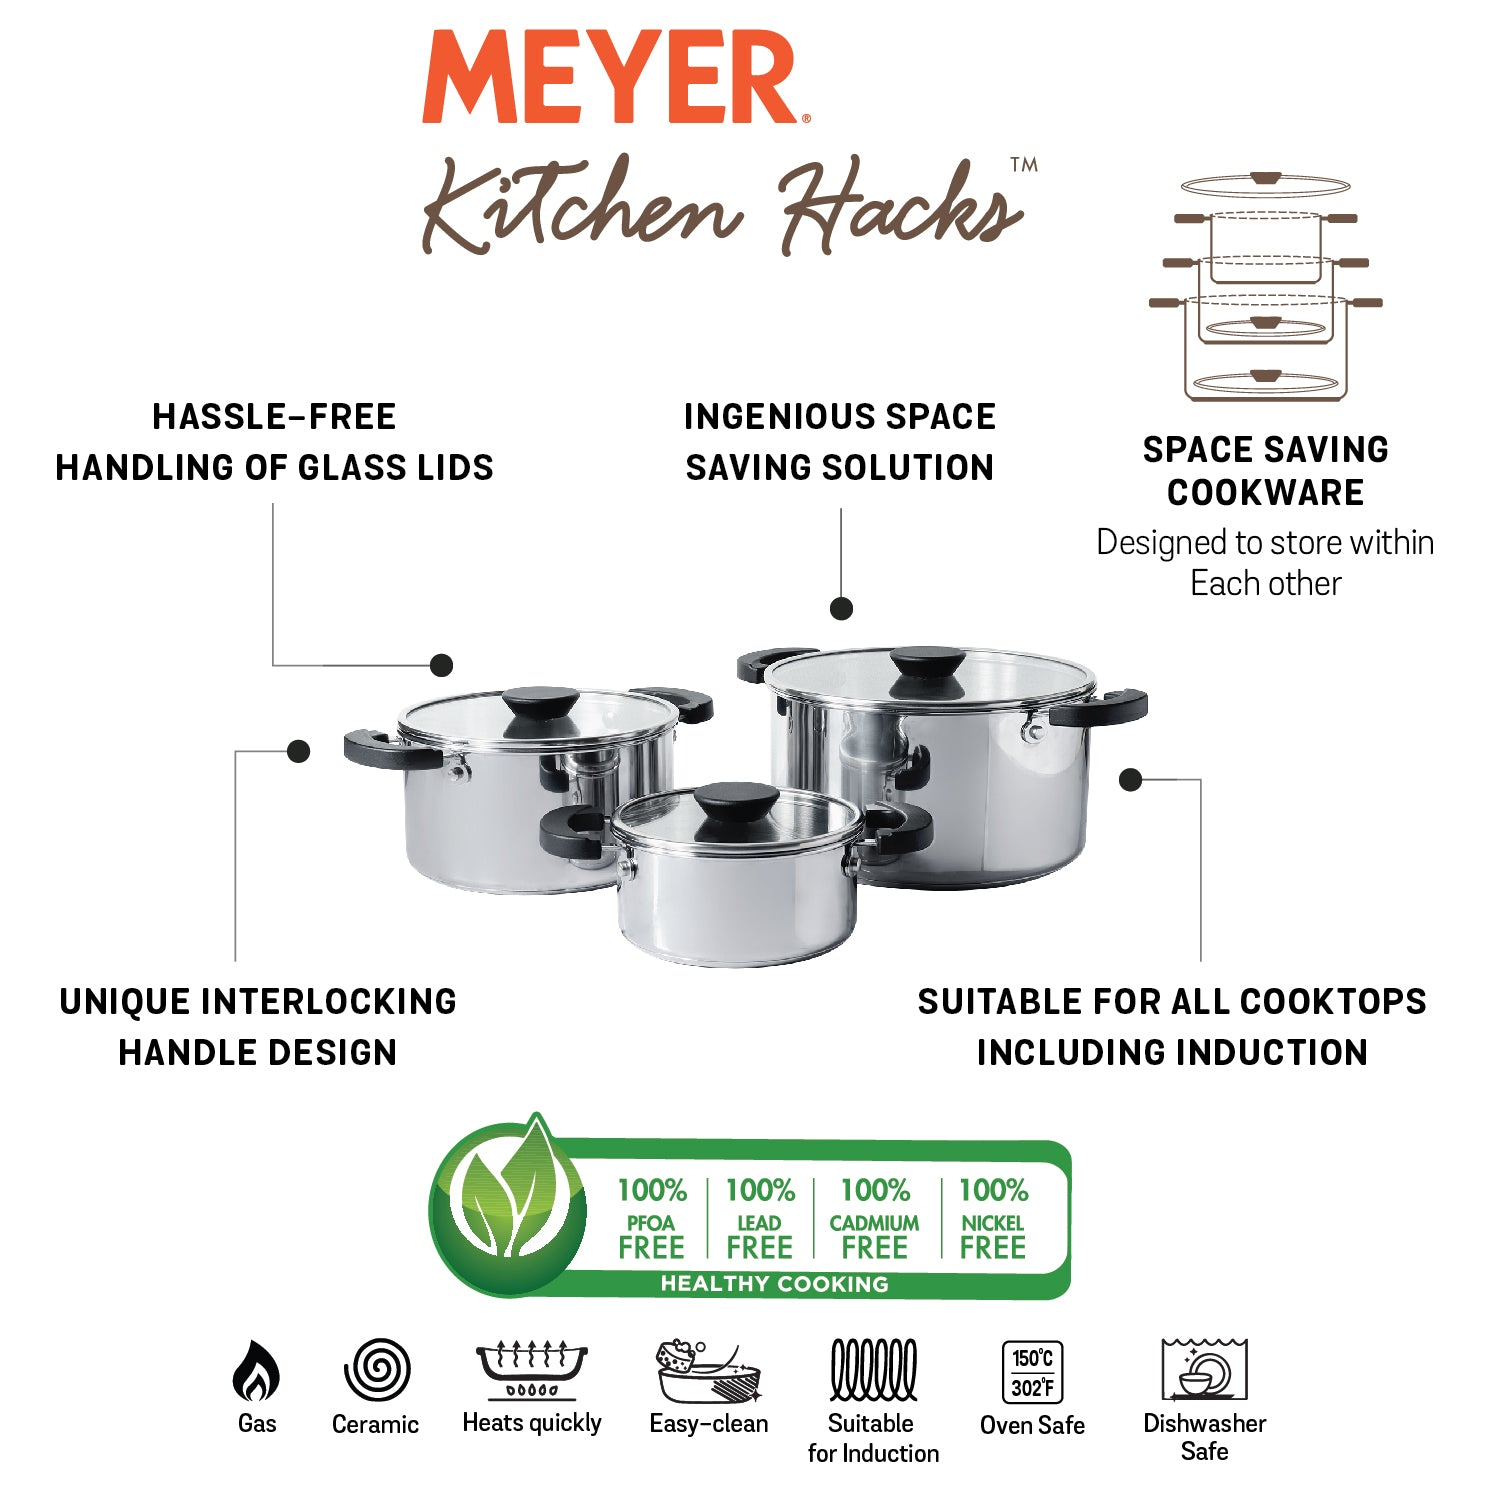 Meyer Kitchen Hacks 3 Piece Casserole Biryani Pot Set - Pots and Pans